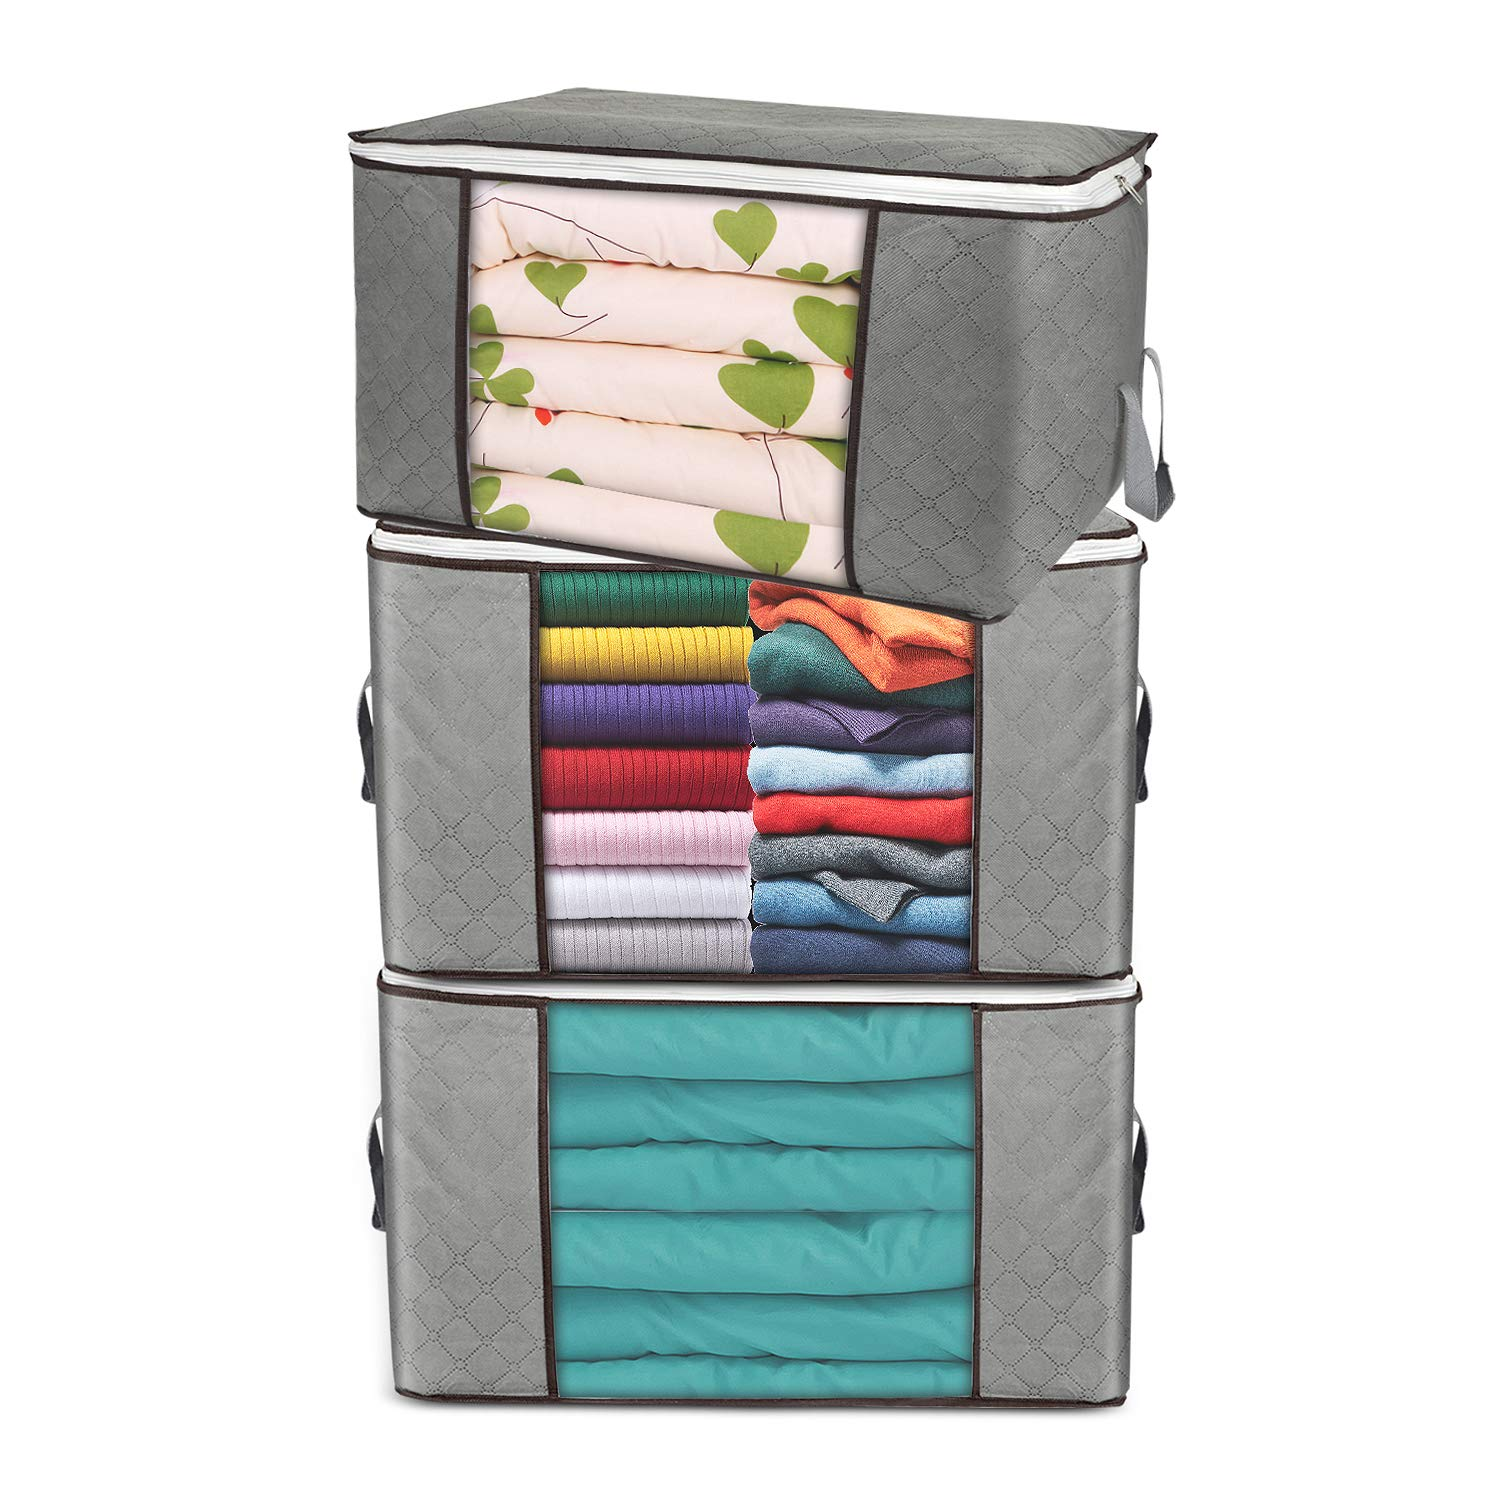 Large Storage Bags 3 Pack Clothes Storage Bins Foldable Closet Organizers Storage